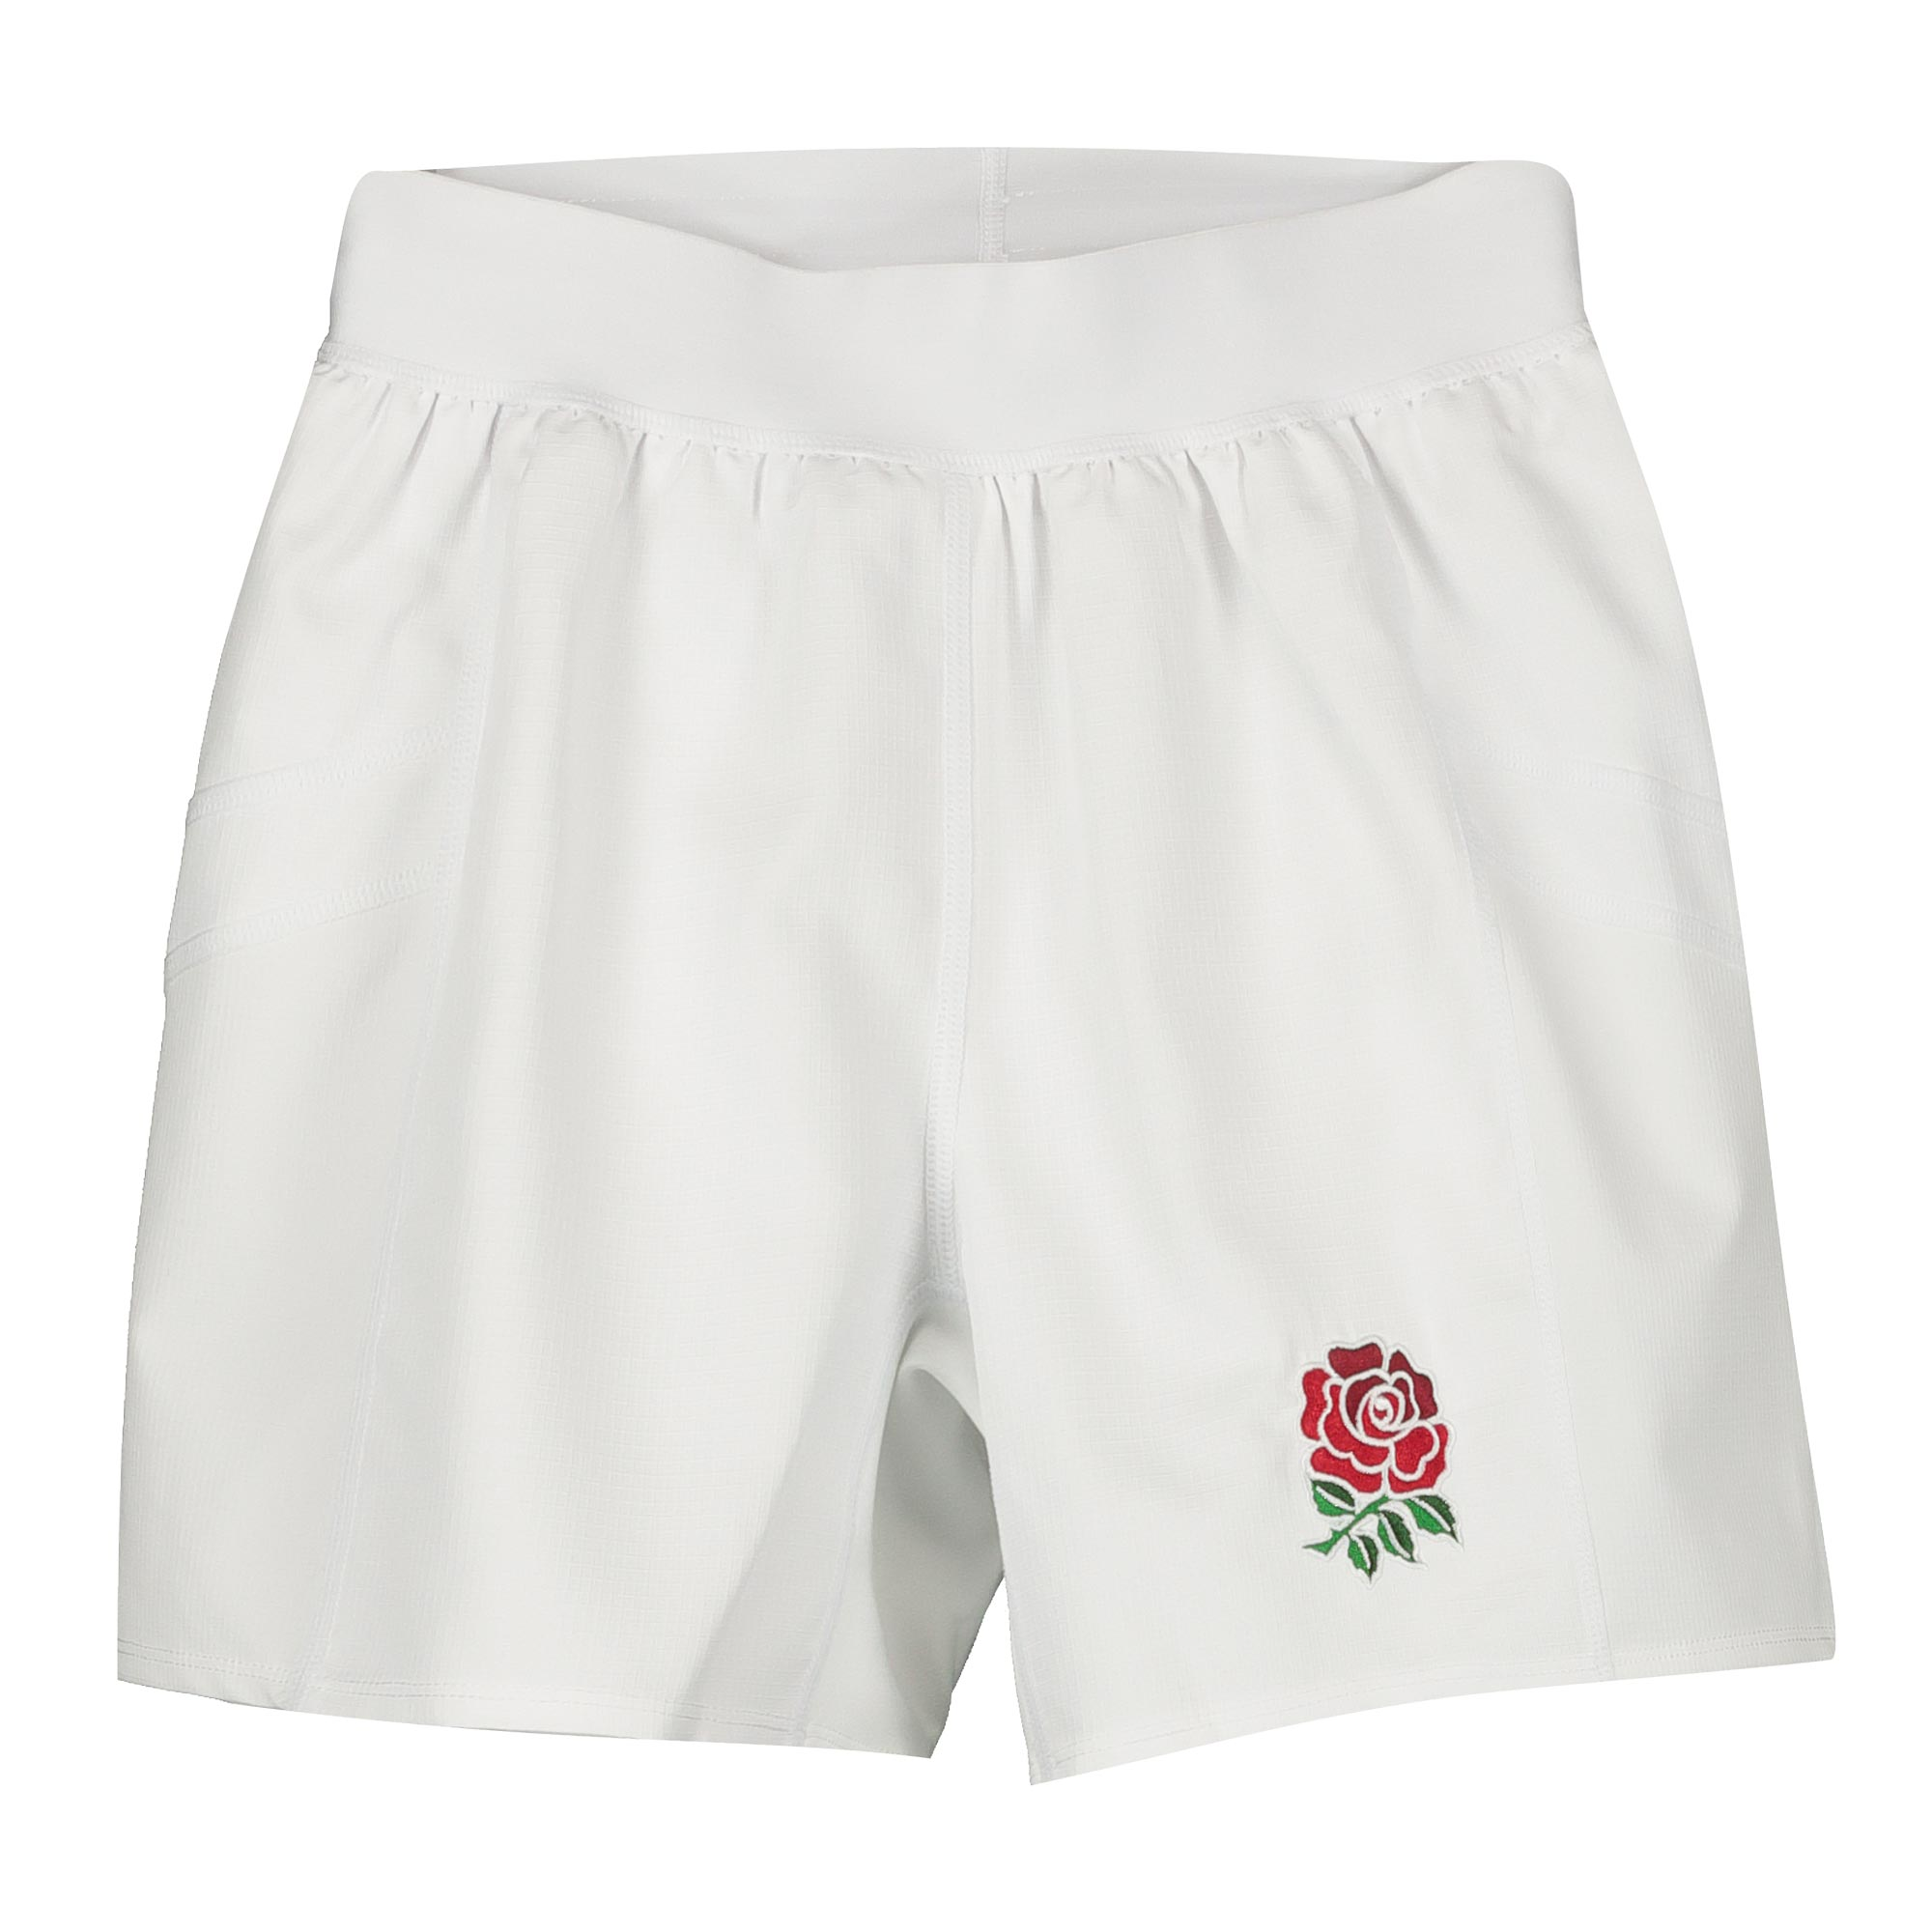 England Vapodri Home Shorts